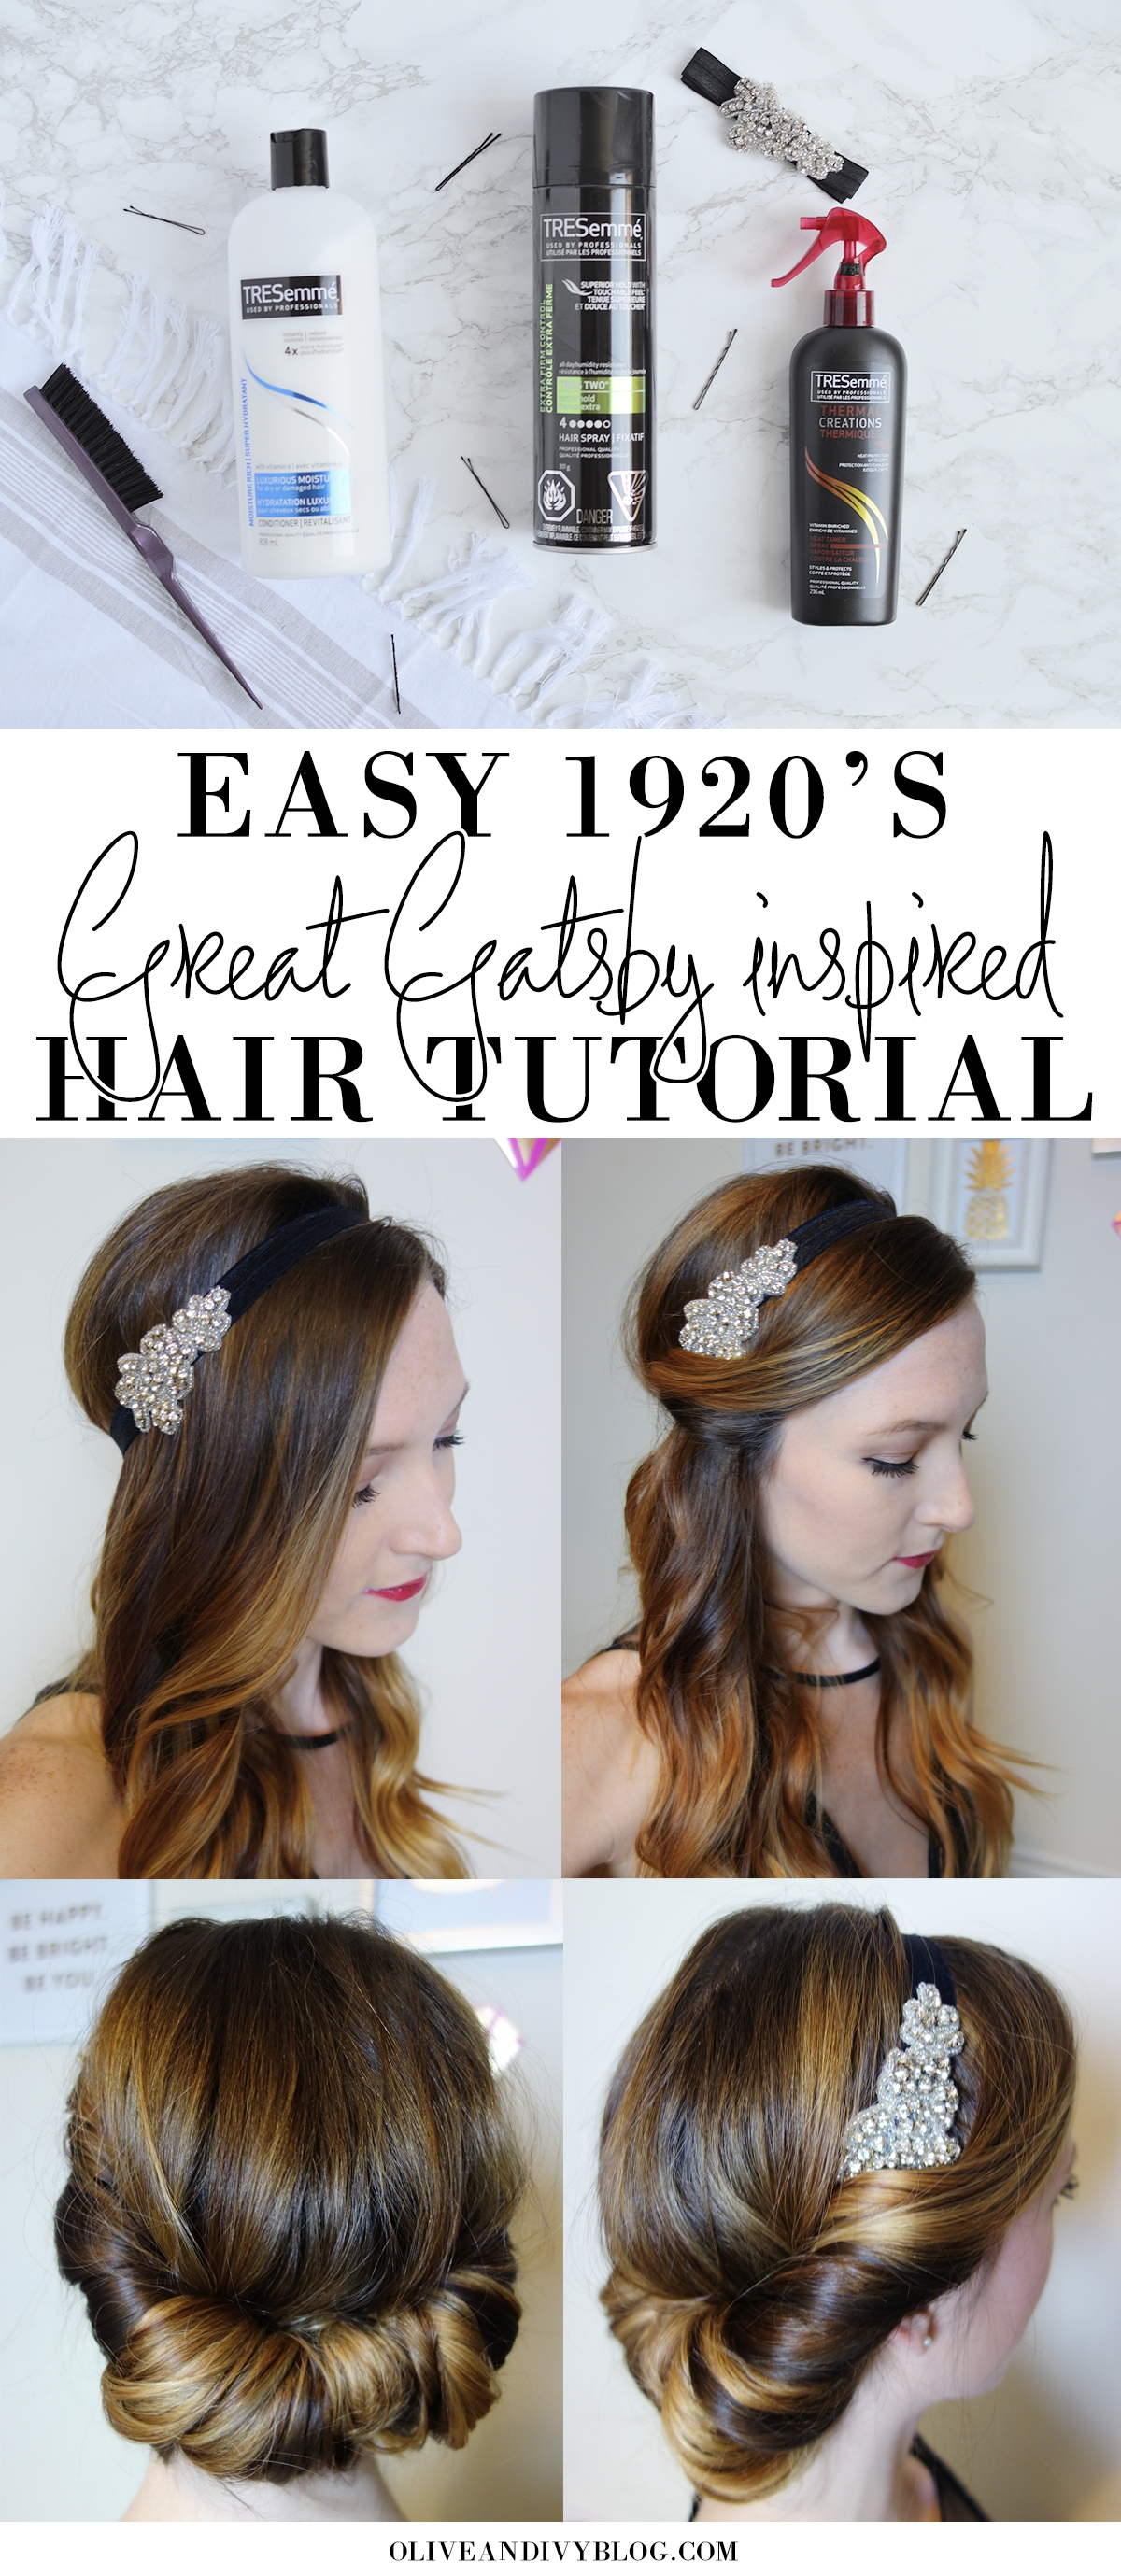 Easy 1920's/great Gatsby Hair Tutorial   1920S   1920S Hair, Great pertaining to Gatsby Hair With Fringe